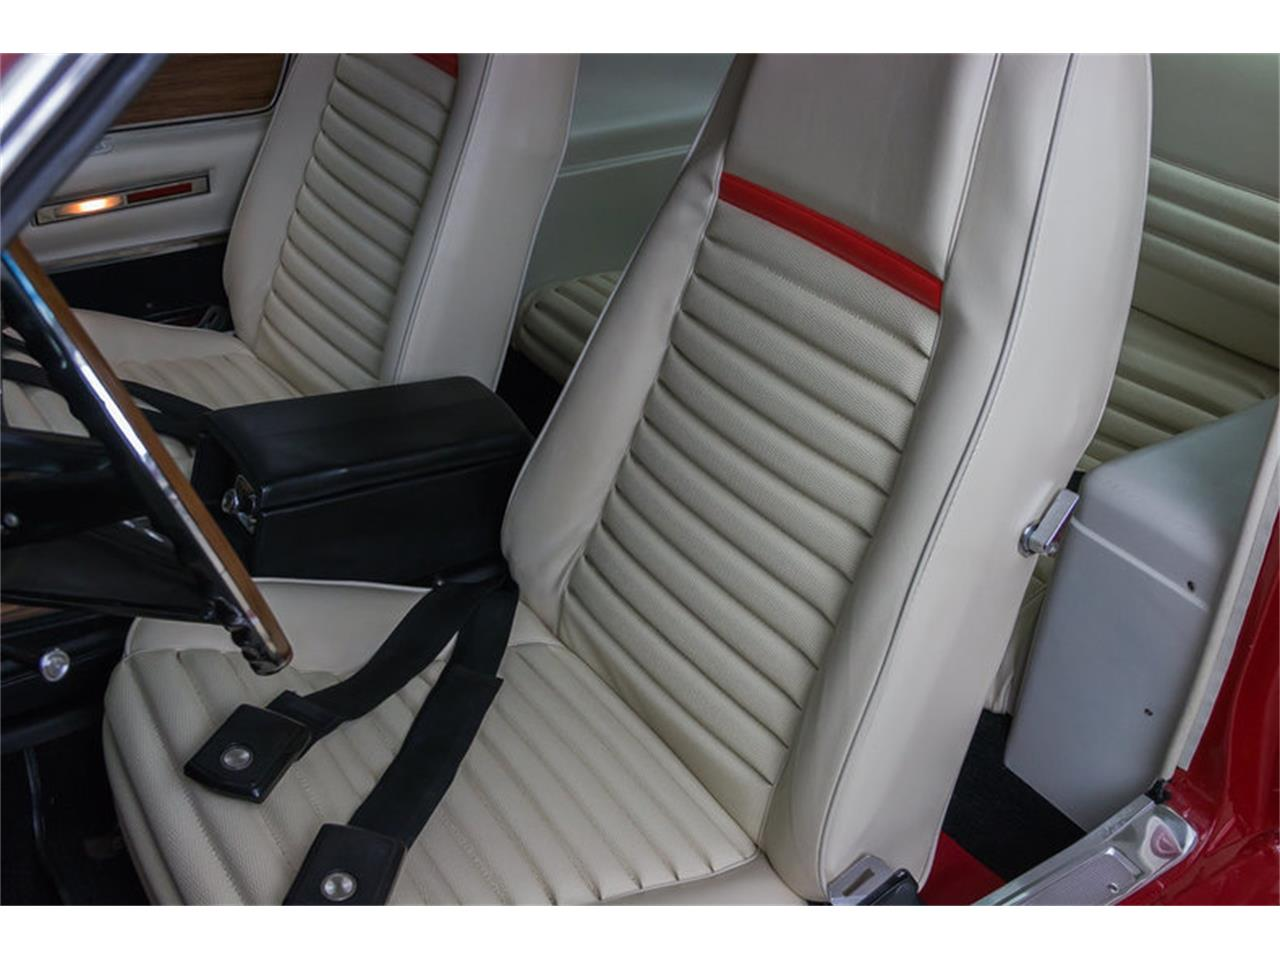 Large Picture of 1969 Mustang Mach 1 S Code - $59,900.00 - IS3G